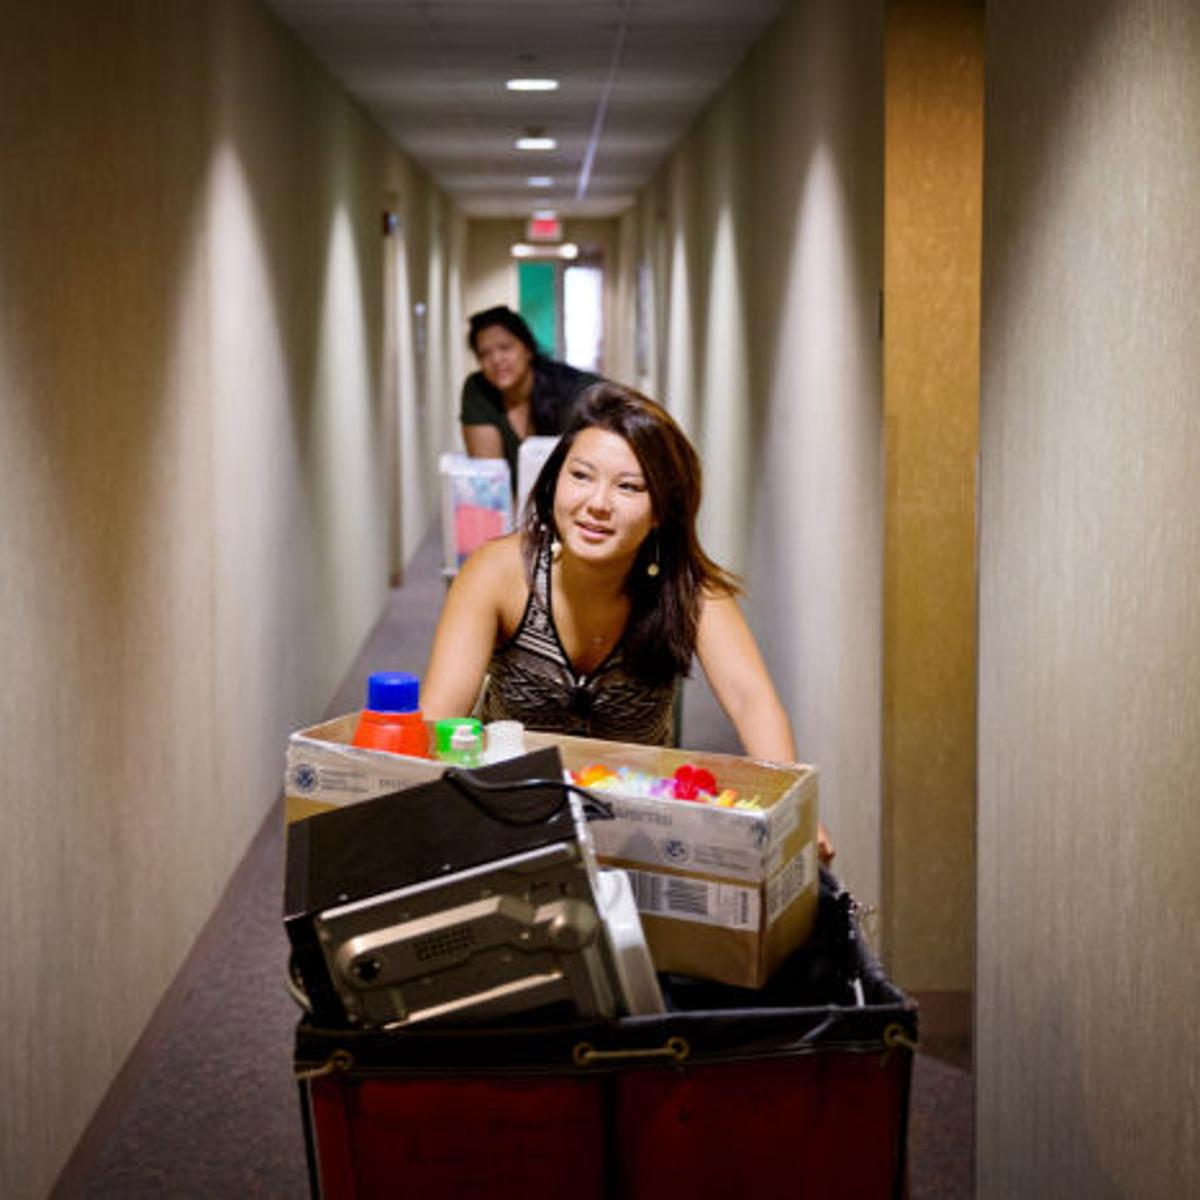 All The Dorm Room Necessities For College Students Lifestyles Omaha Com